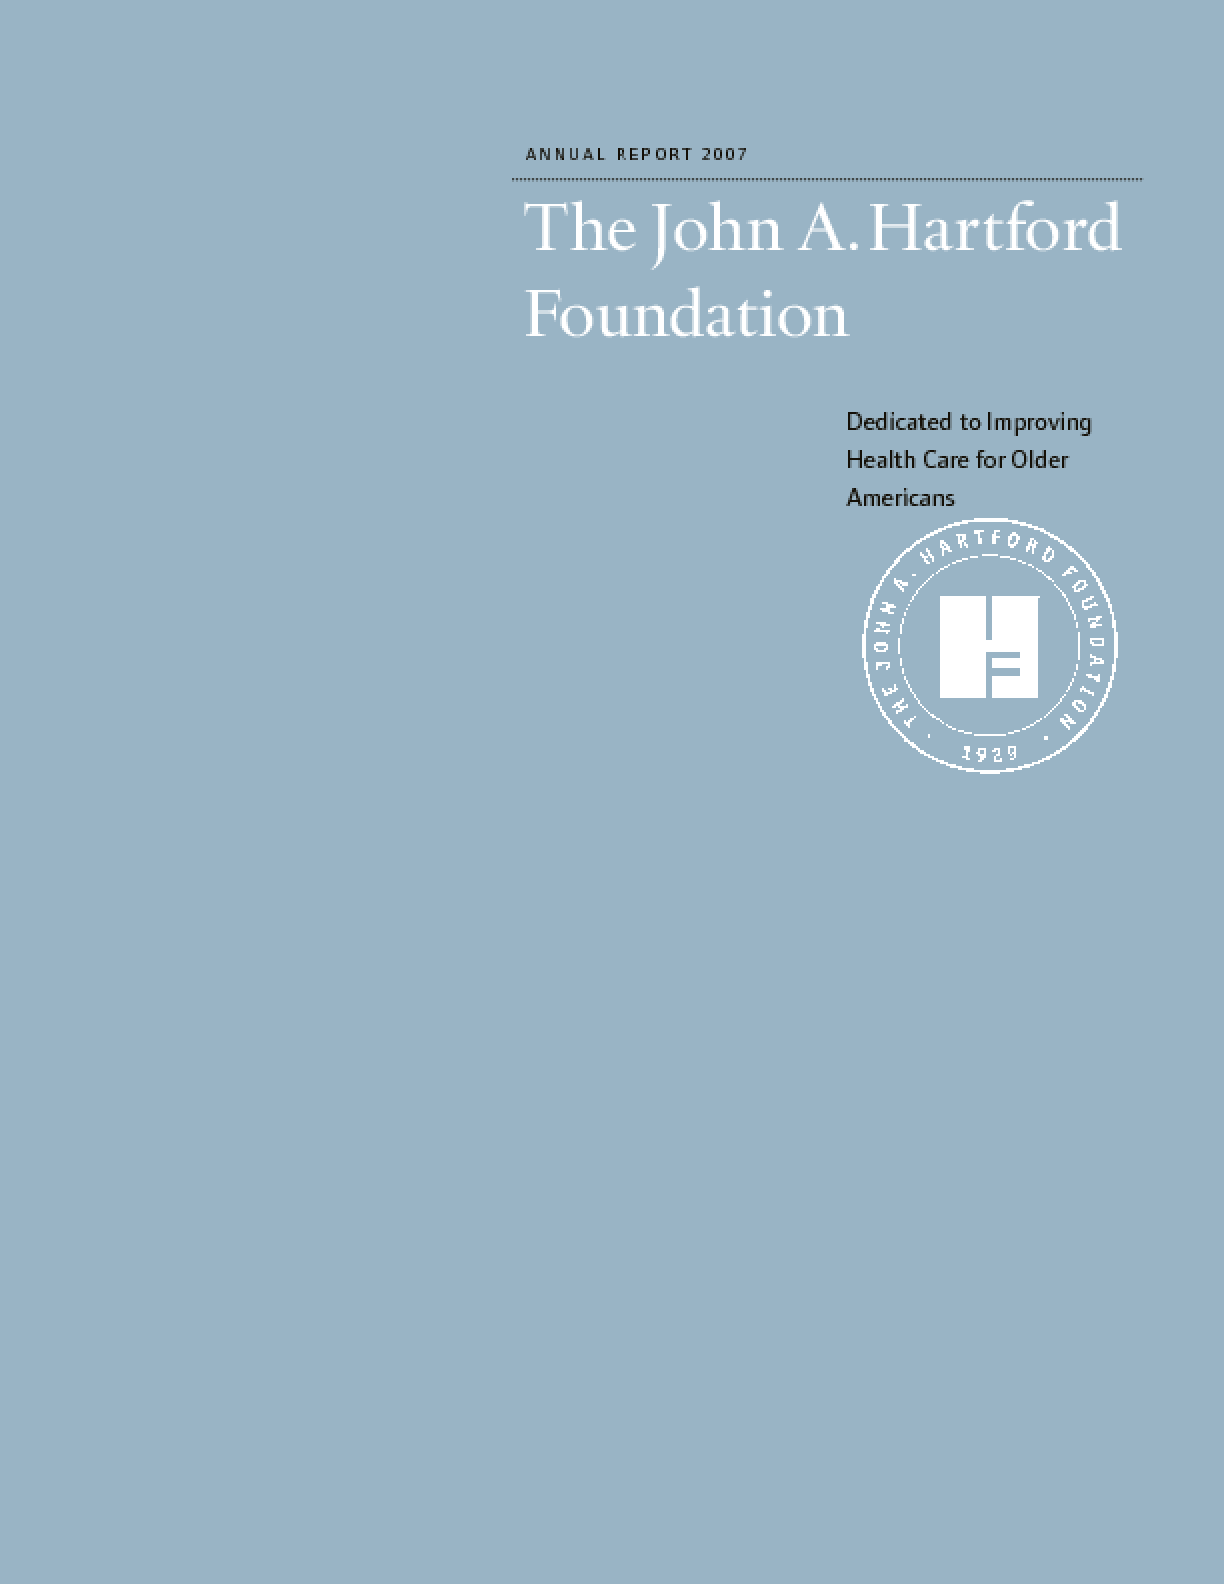 John A. Hartford Foundation - 2007 Annual Report